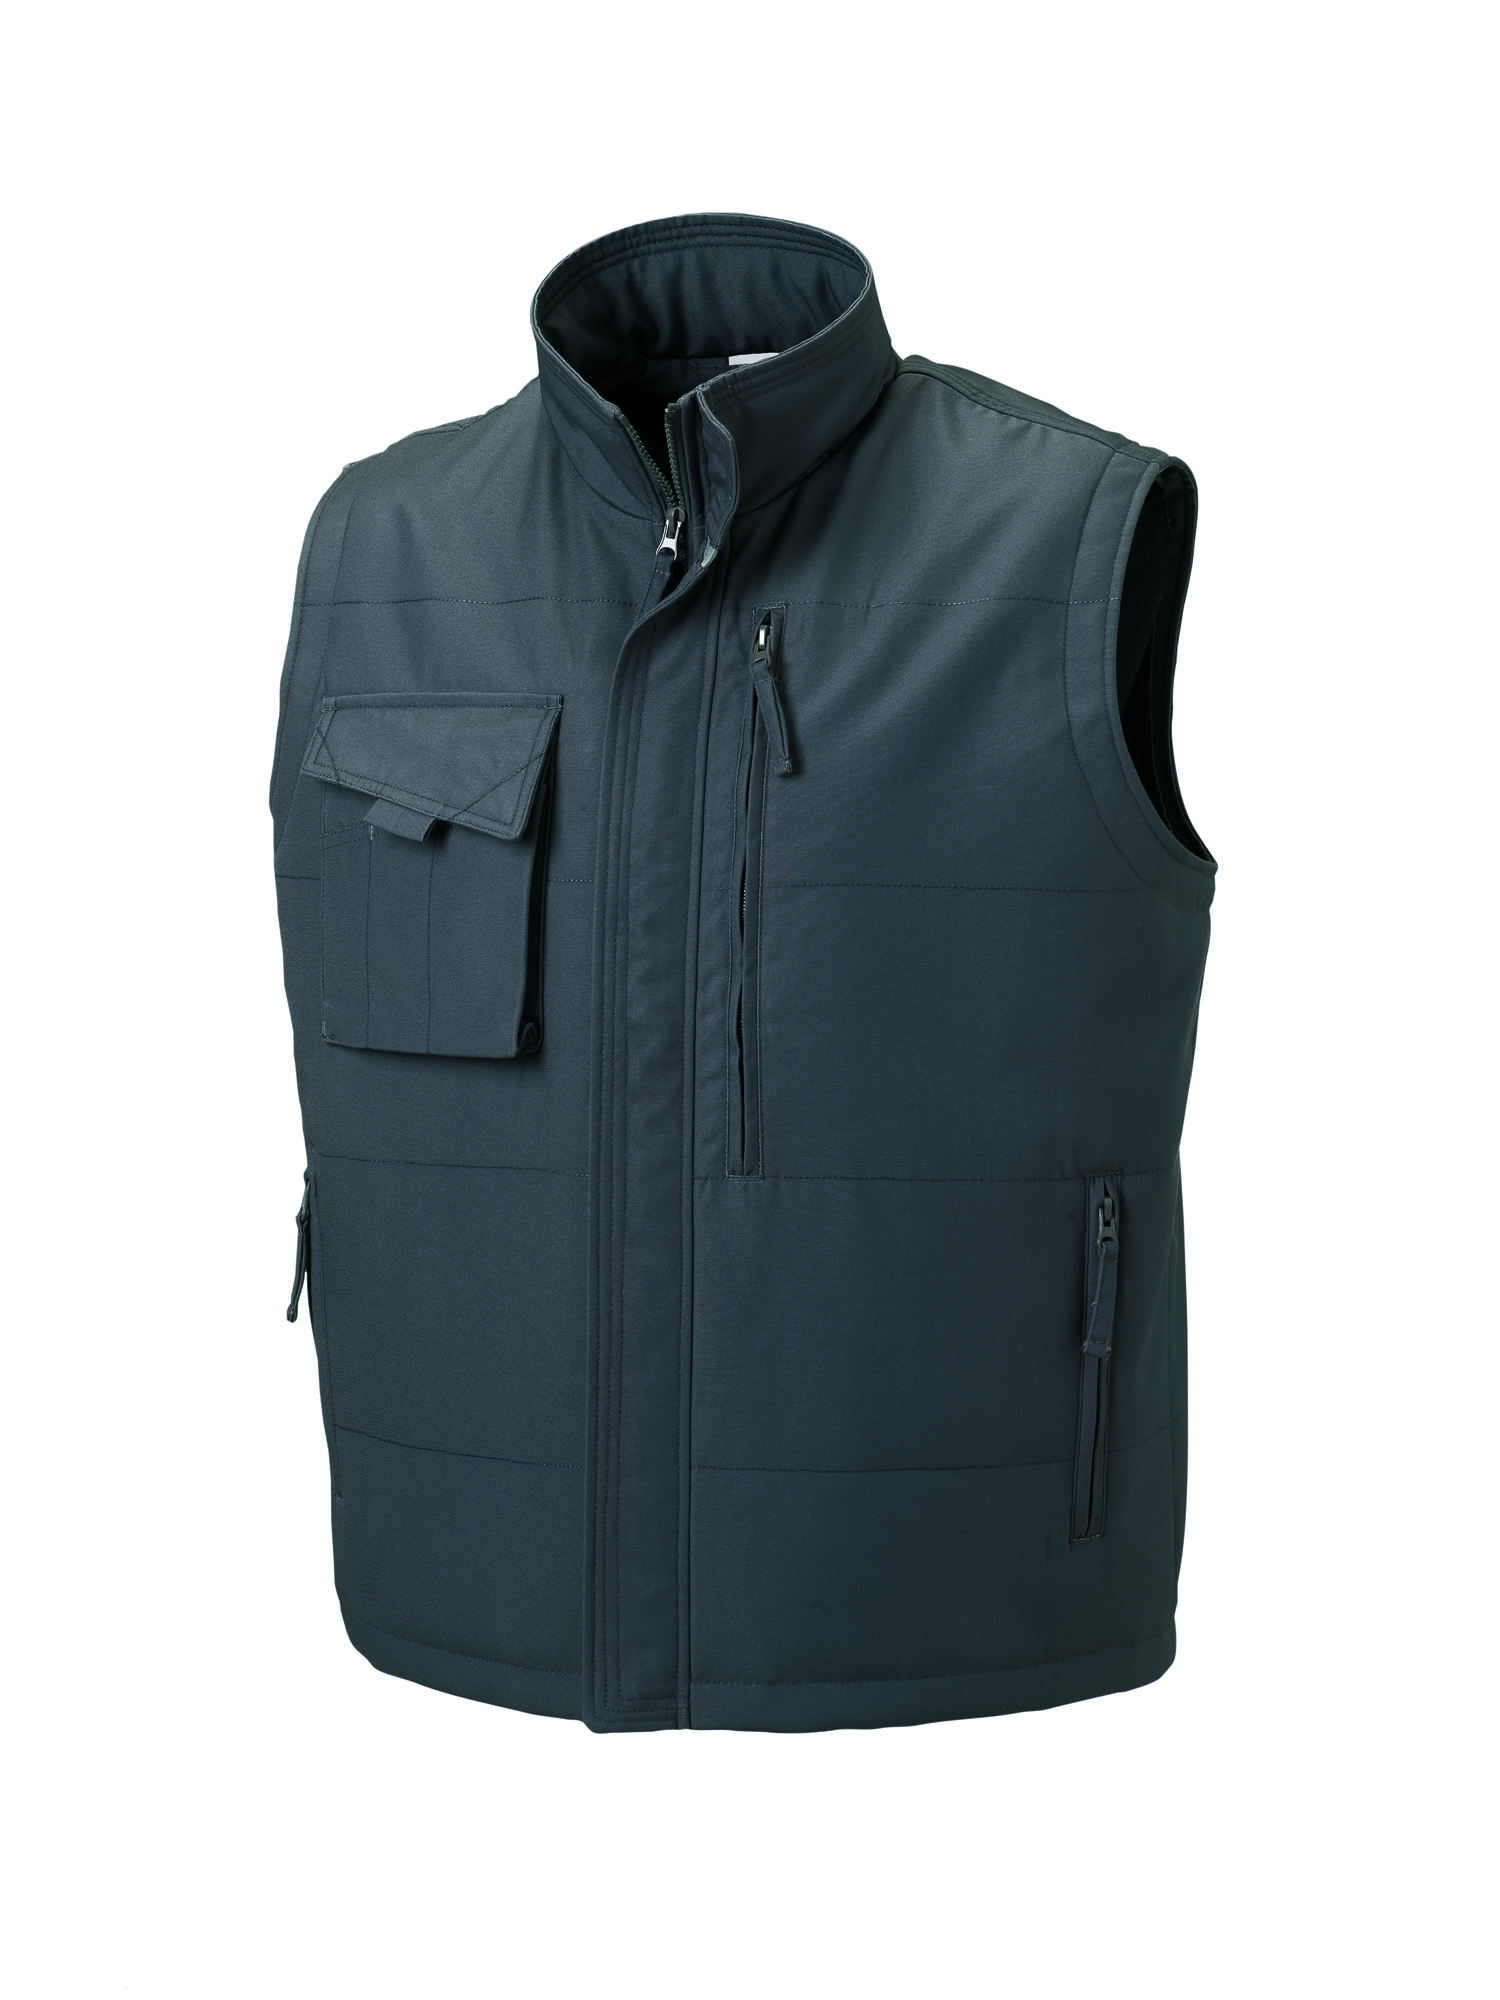 Heavy Duty Gilet - Convoy Grey - XXL